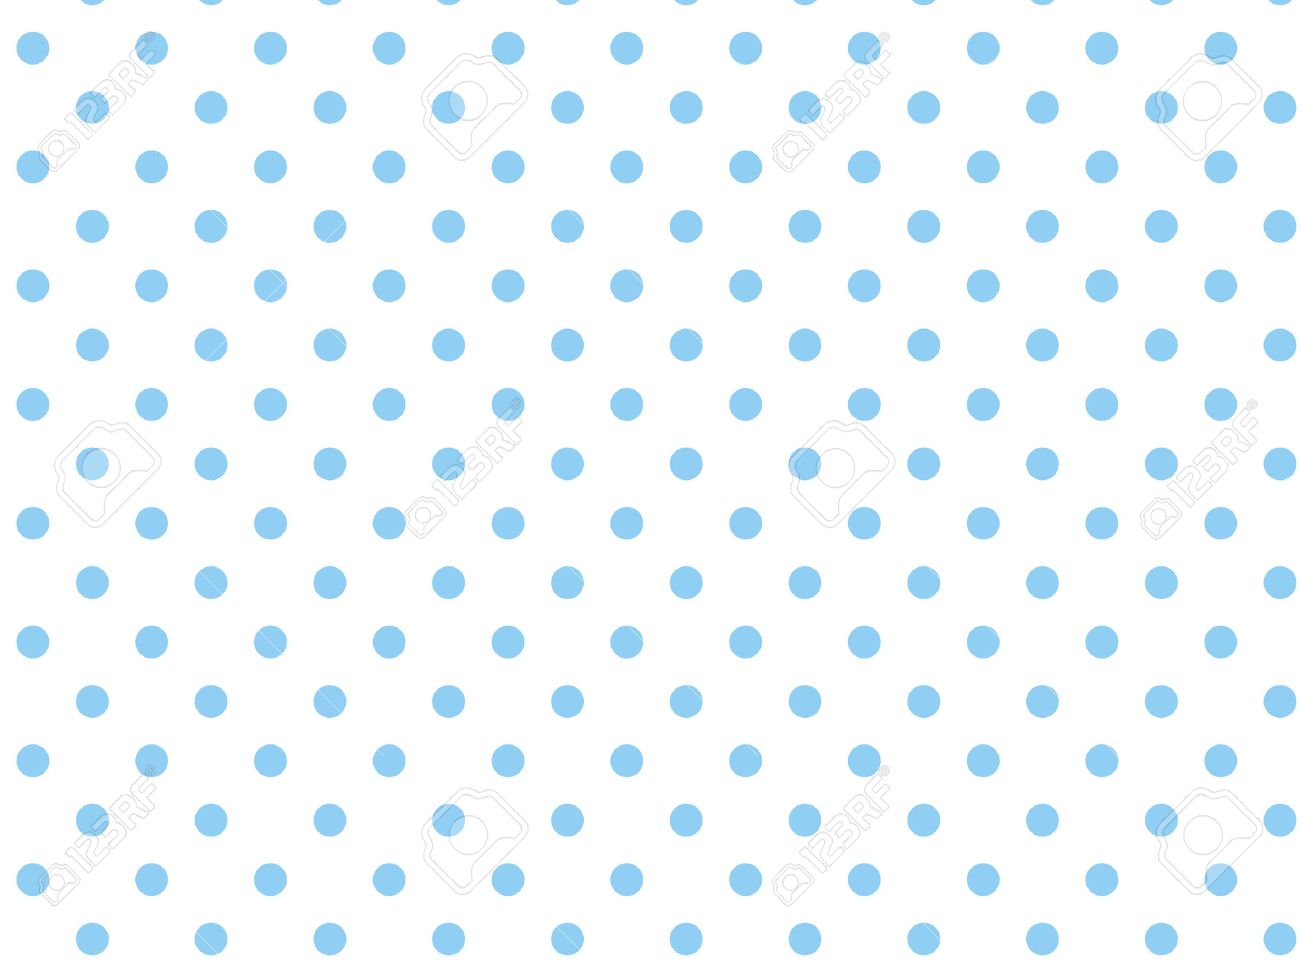 White background with blue polka dots. - 7347136